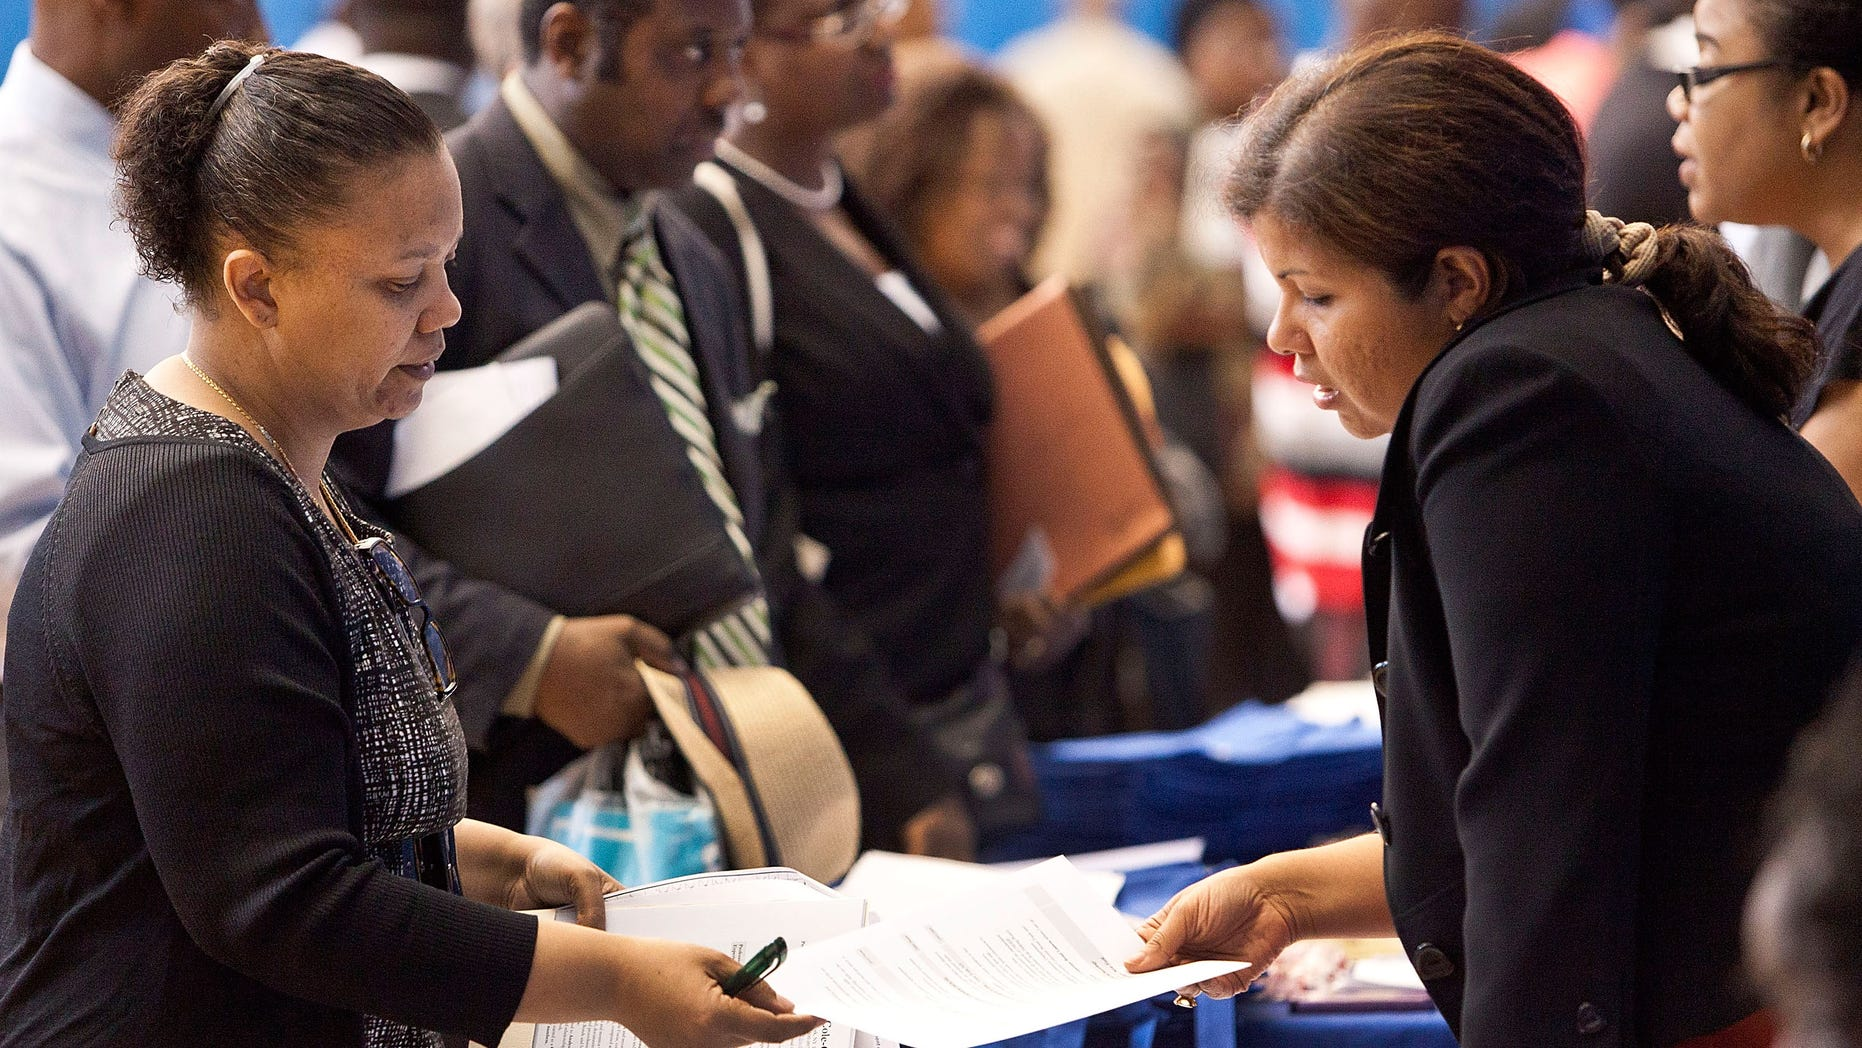 """NEW YORK, NY - JUNE 07:  A woman speaks to a potential employer at a New York state jobs fair in the Harlem Armory on June 7, 2012 in New York City. The job fair was put together by the New York State Department of Labor and New York State assemblyman Keith Wright. The U.S. Department of Labor has coined the month of June as """"Jobs Fair Month.""""  (Photo by Andrew Burton/Getty Images)"""